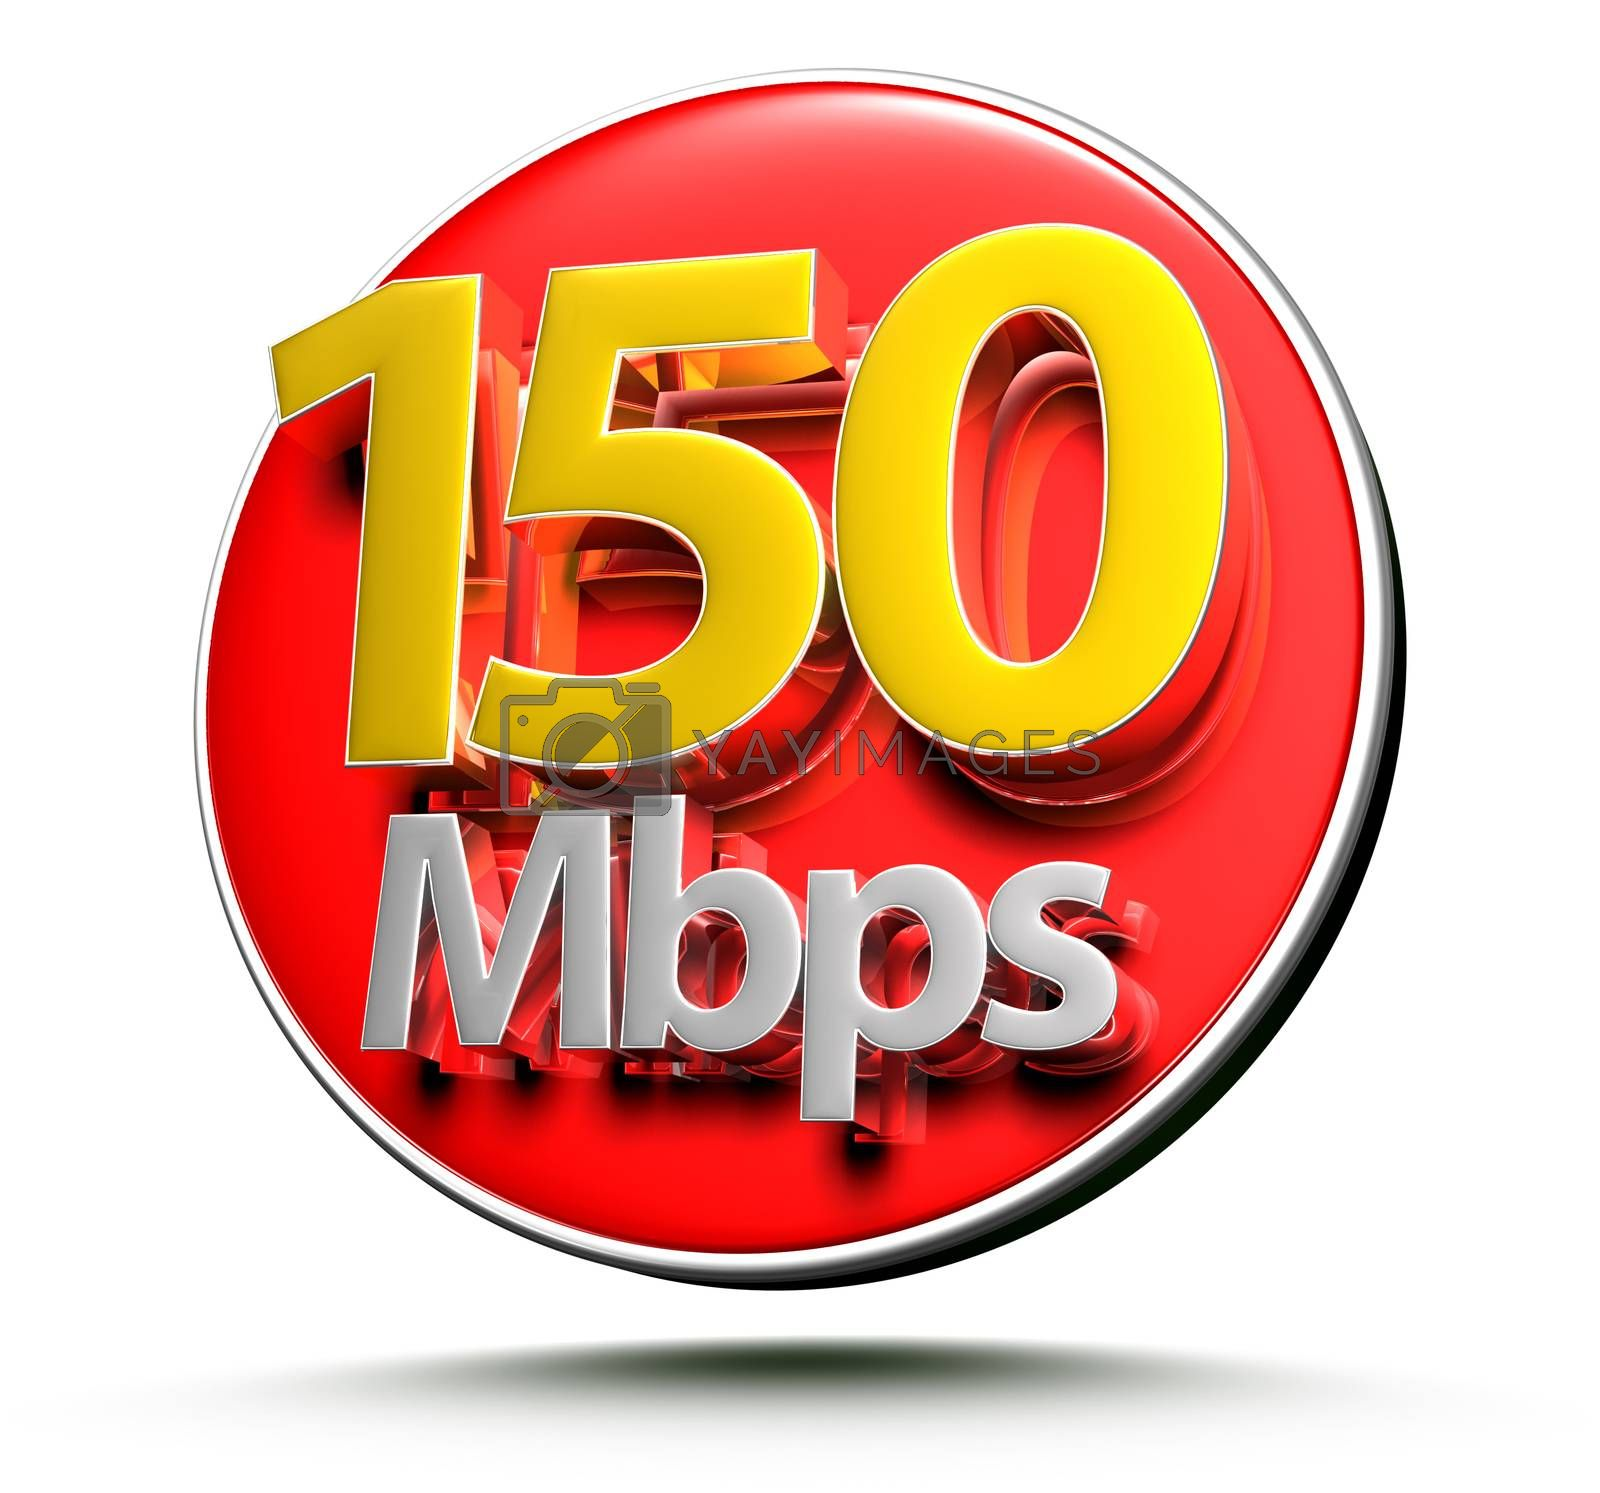 150 mbps 3d. by thitimon